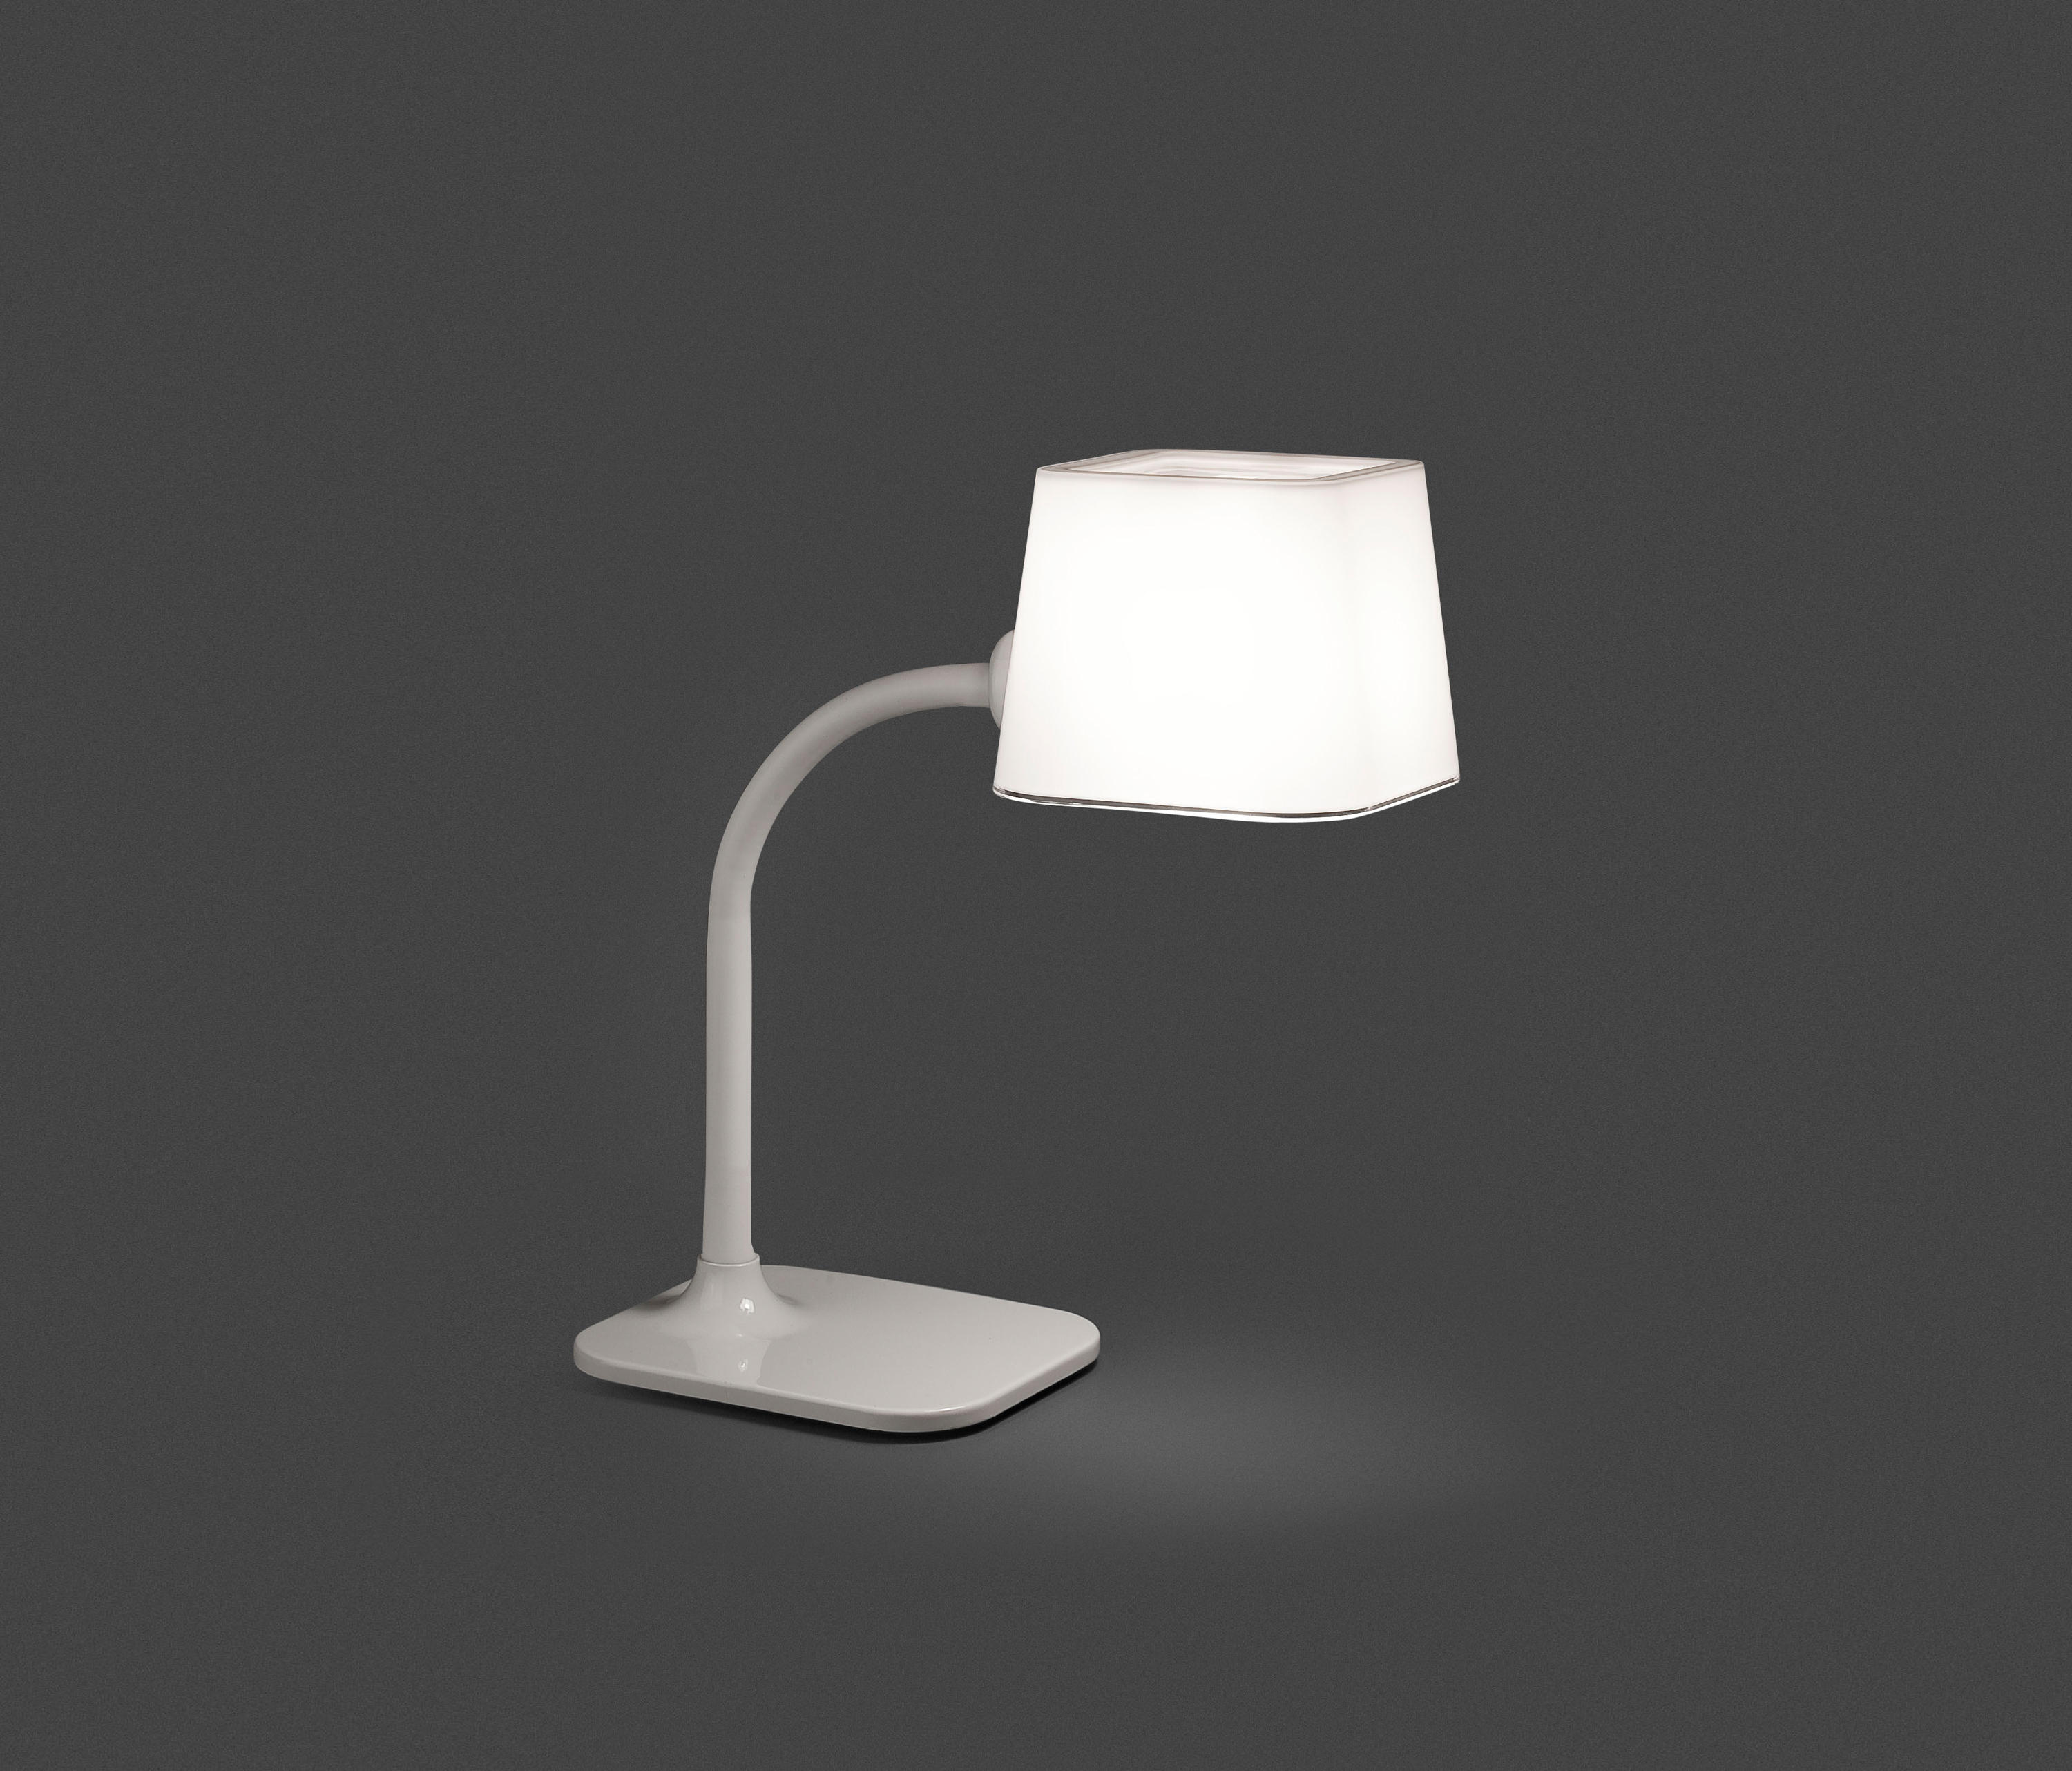 ... Flexi table l& by Faro ... & FLEXI TABLE LAMP - General lighting from Faro   Architonic azcodes.com